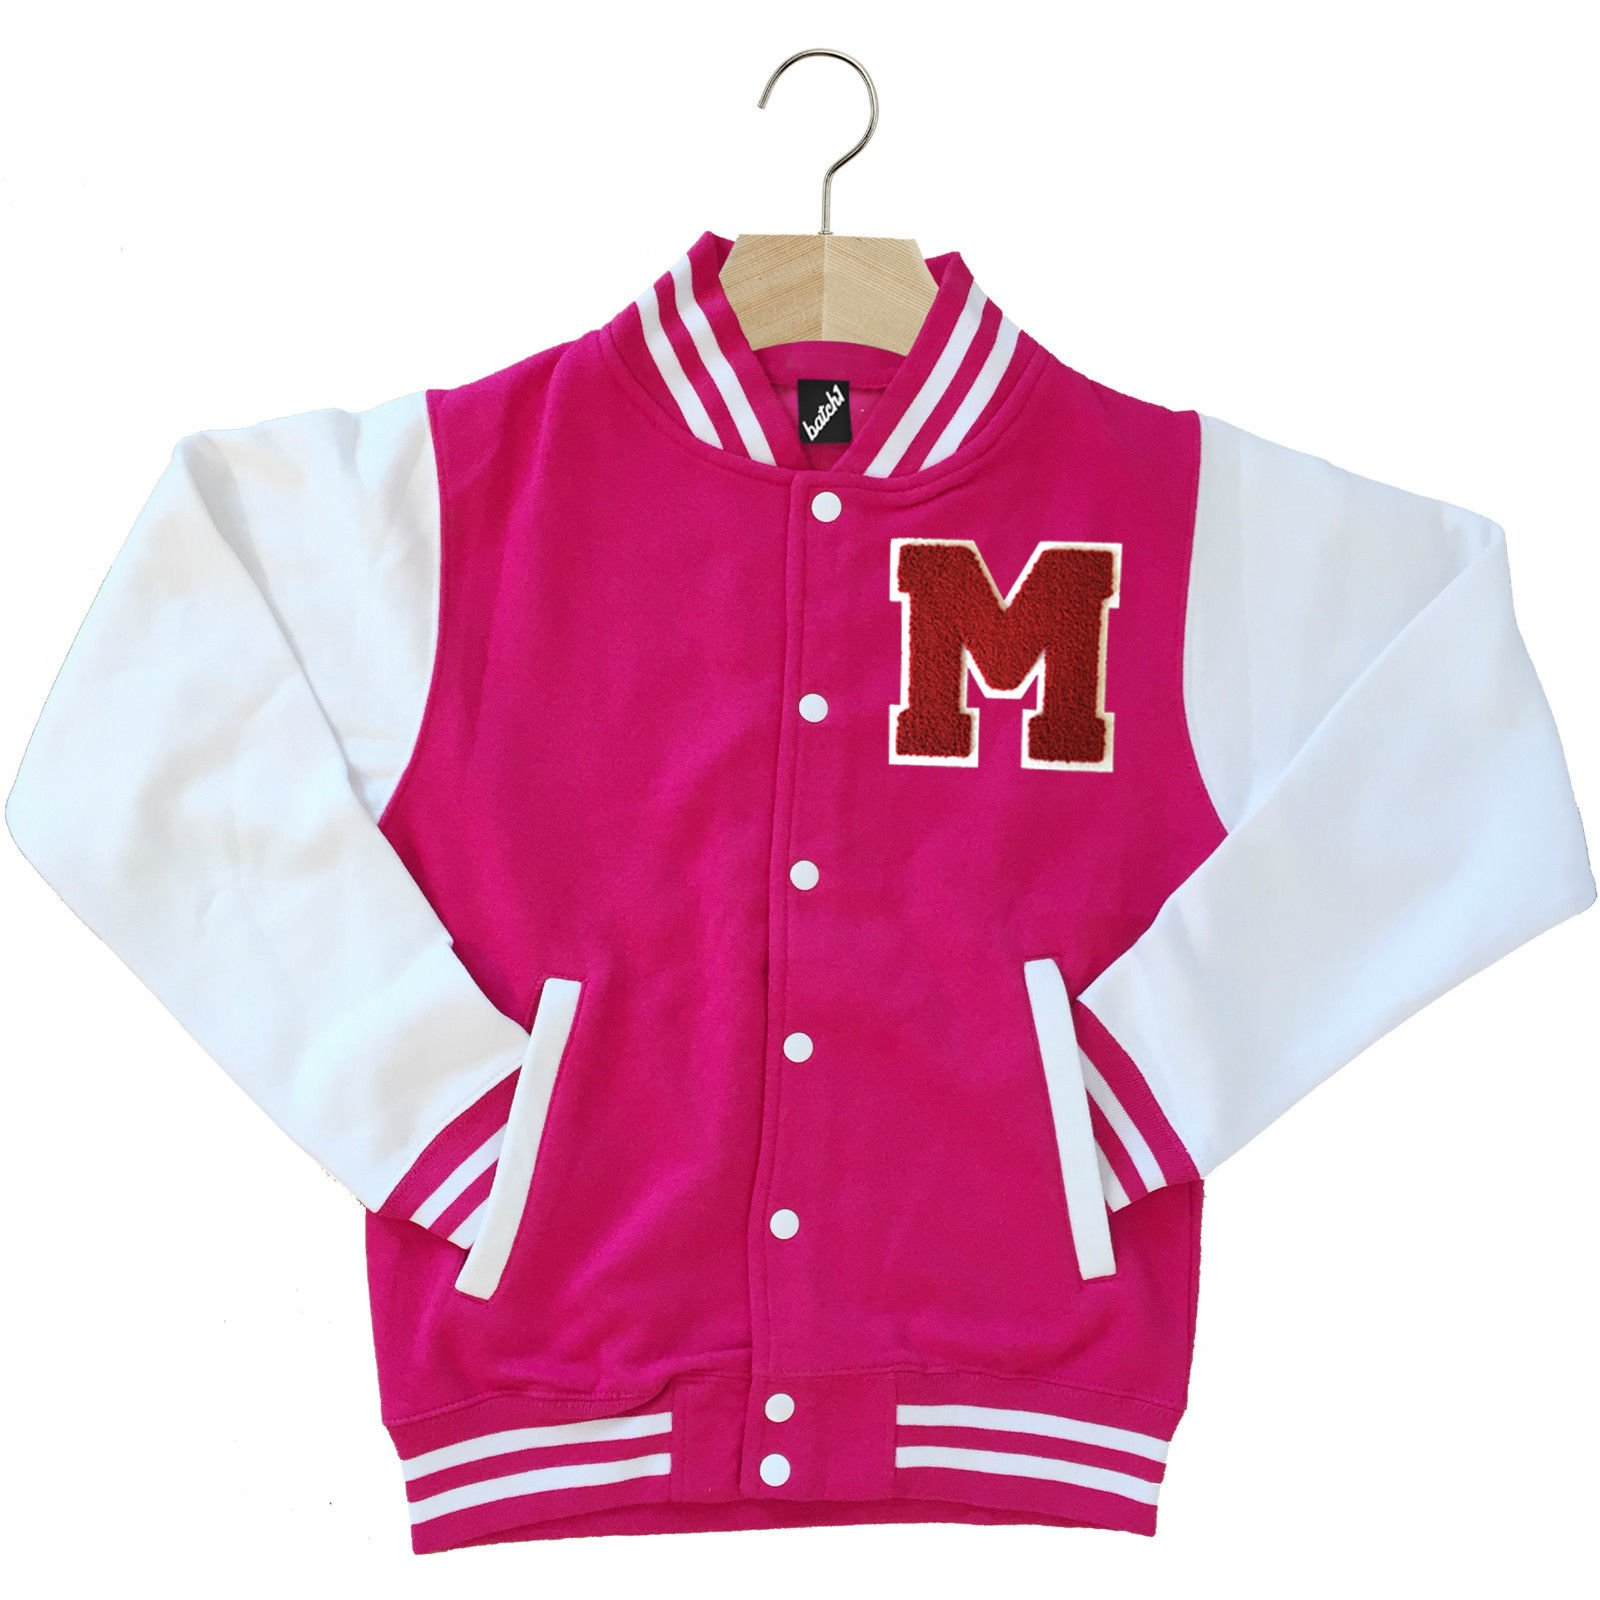 VARSITY BASEBALL JACKET UNISEX PERSONALISED WITH GENUINE US COLLEGE LETTER M by Batch1